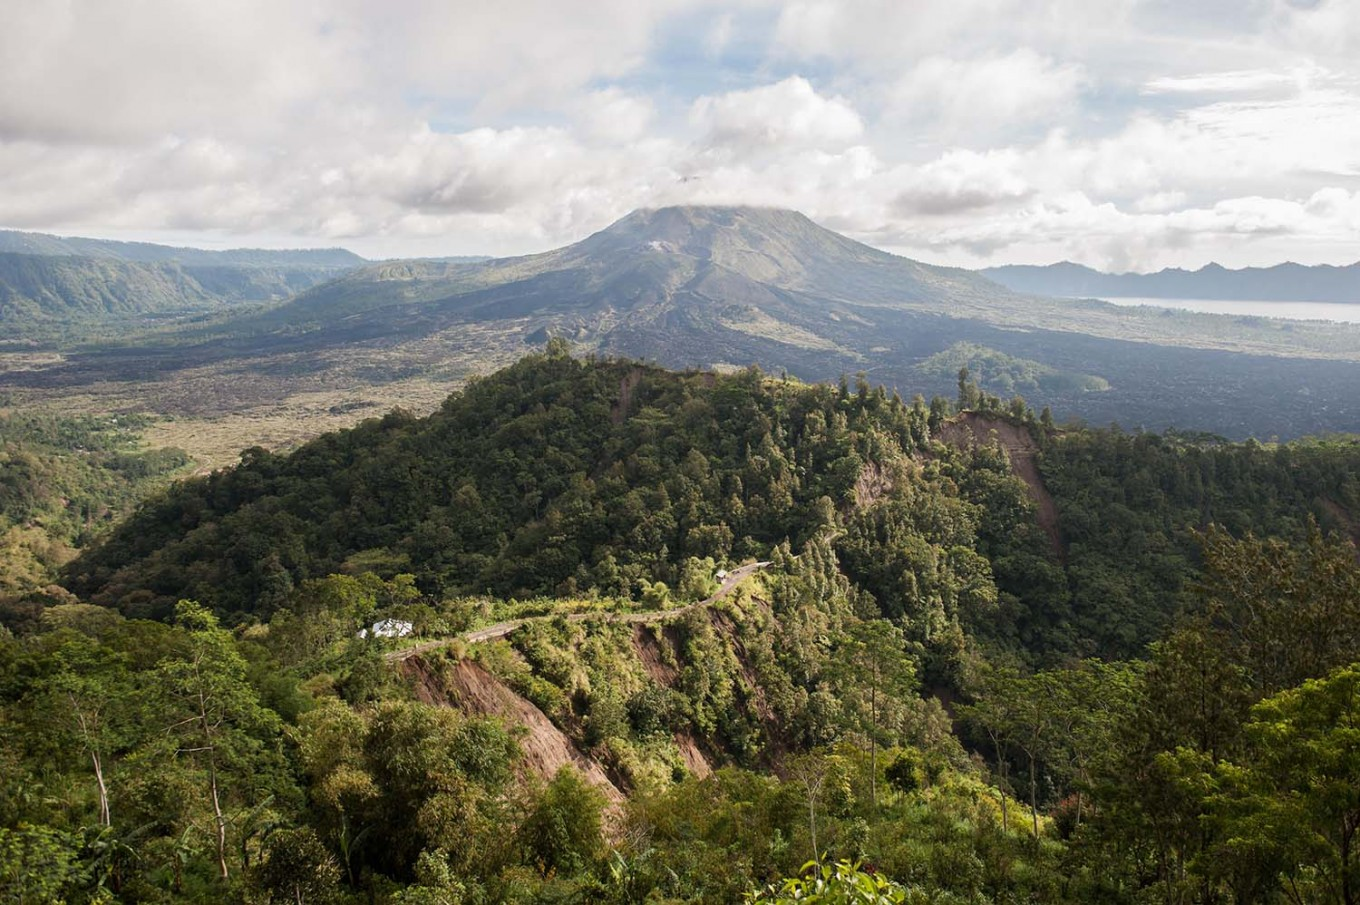 An aerial view of Mount Batur and the main road to Payang village, Kinatamani, Bali, which was struck by a landslide last week. Landslides also occurred in other villages, such as Bantas, Tabu, Yeh Mampeh, Culali, Tukad and Alengkong, captured from the top on Monday, February 13, 2017. JP/ Anggara Mahendra